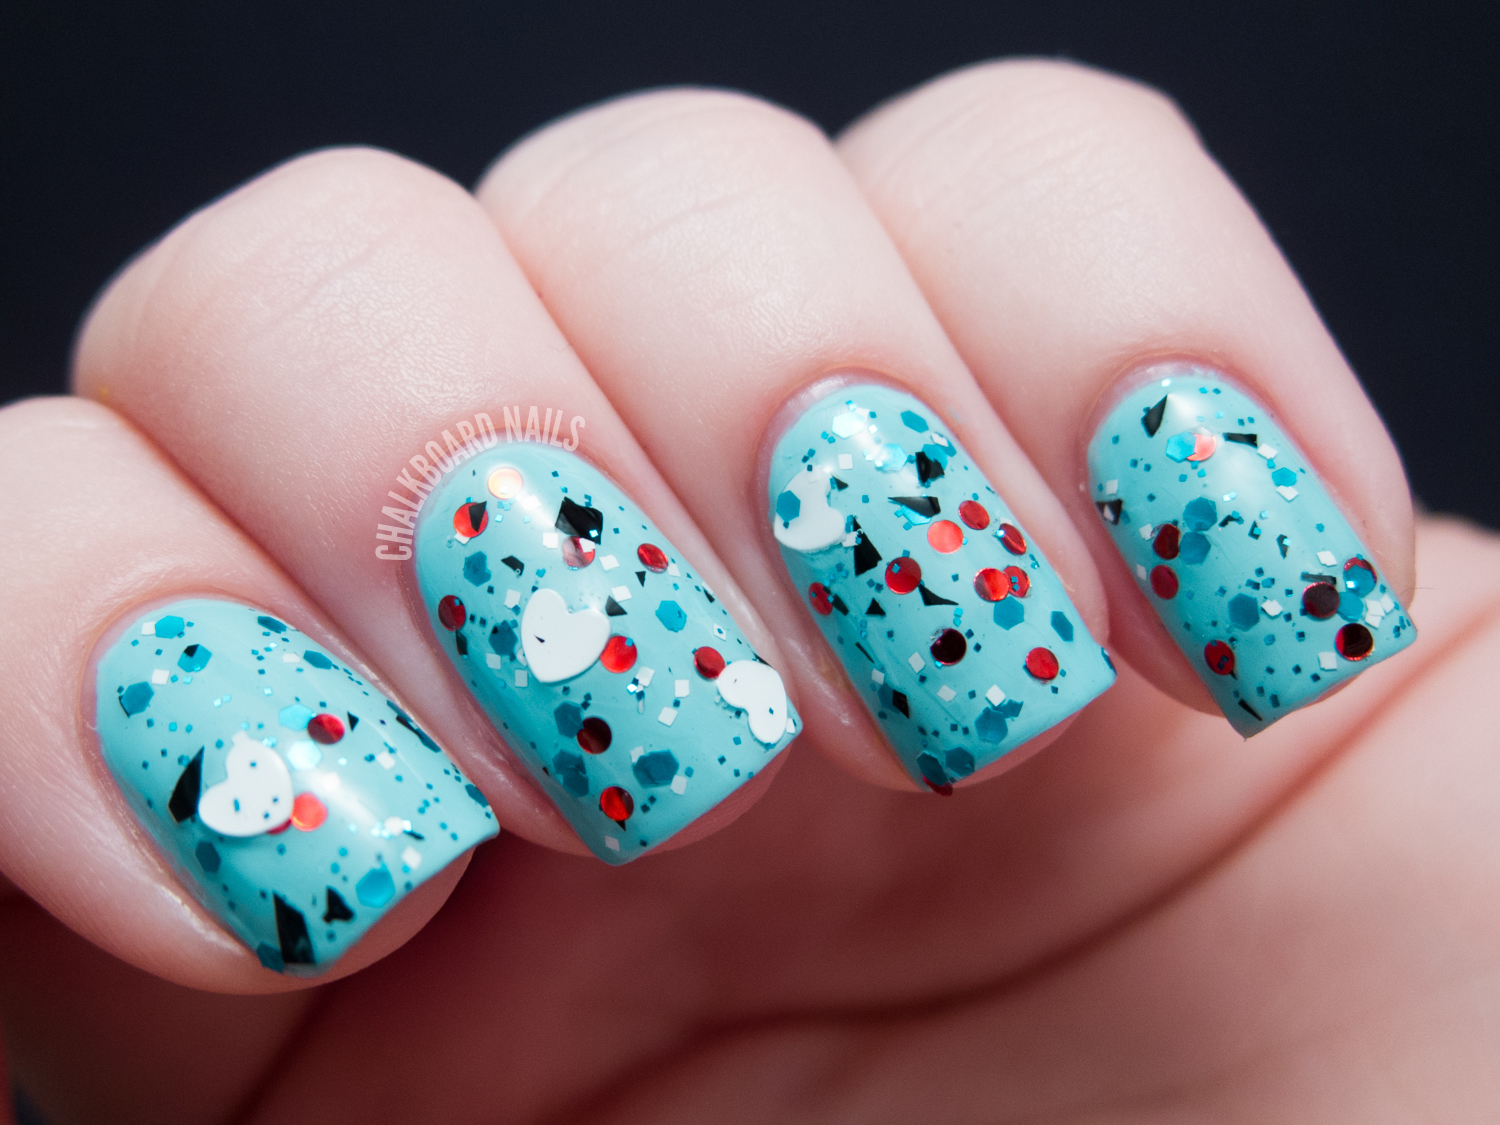 I Love Nail Polish - Valentine\'s Day Collection | Chalkboard Nails ...